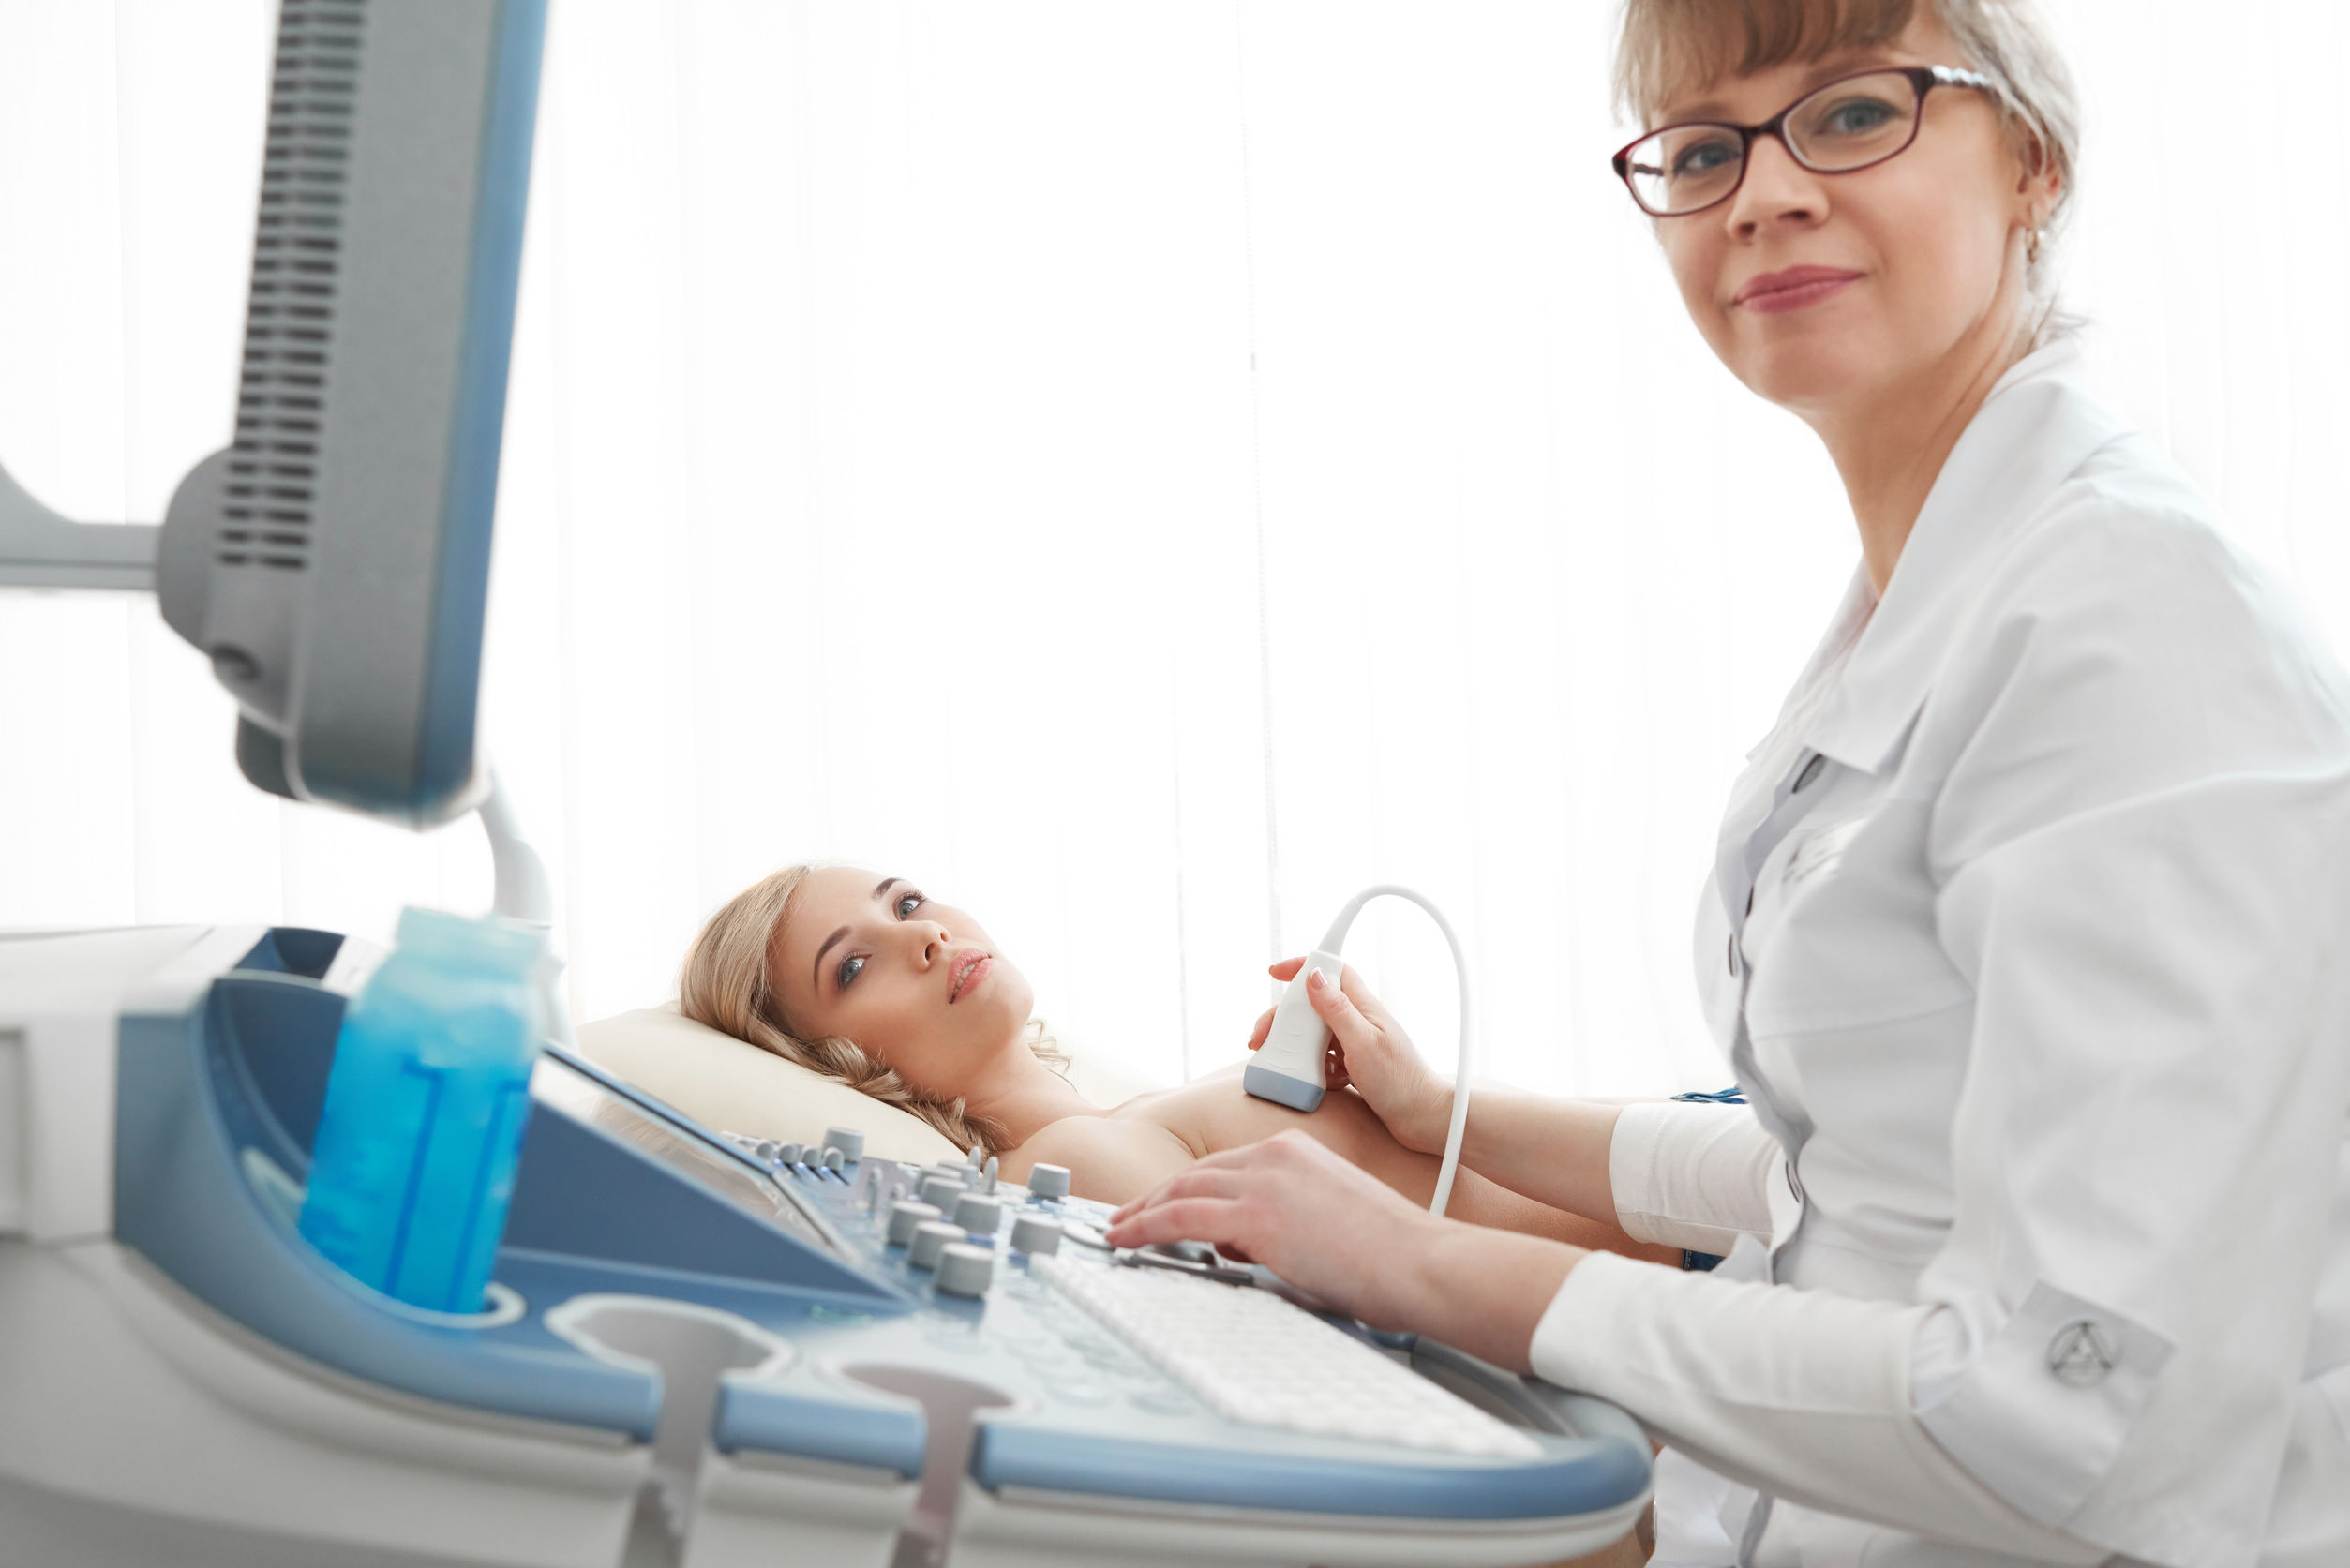 Young woman getting breast ultrasound scanning